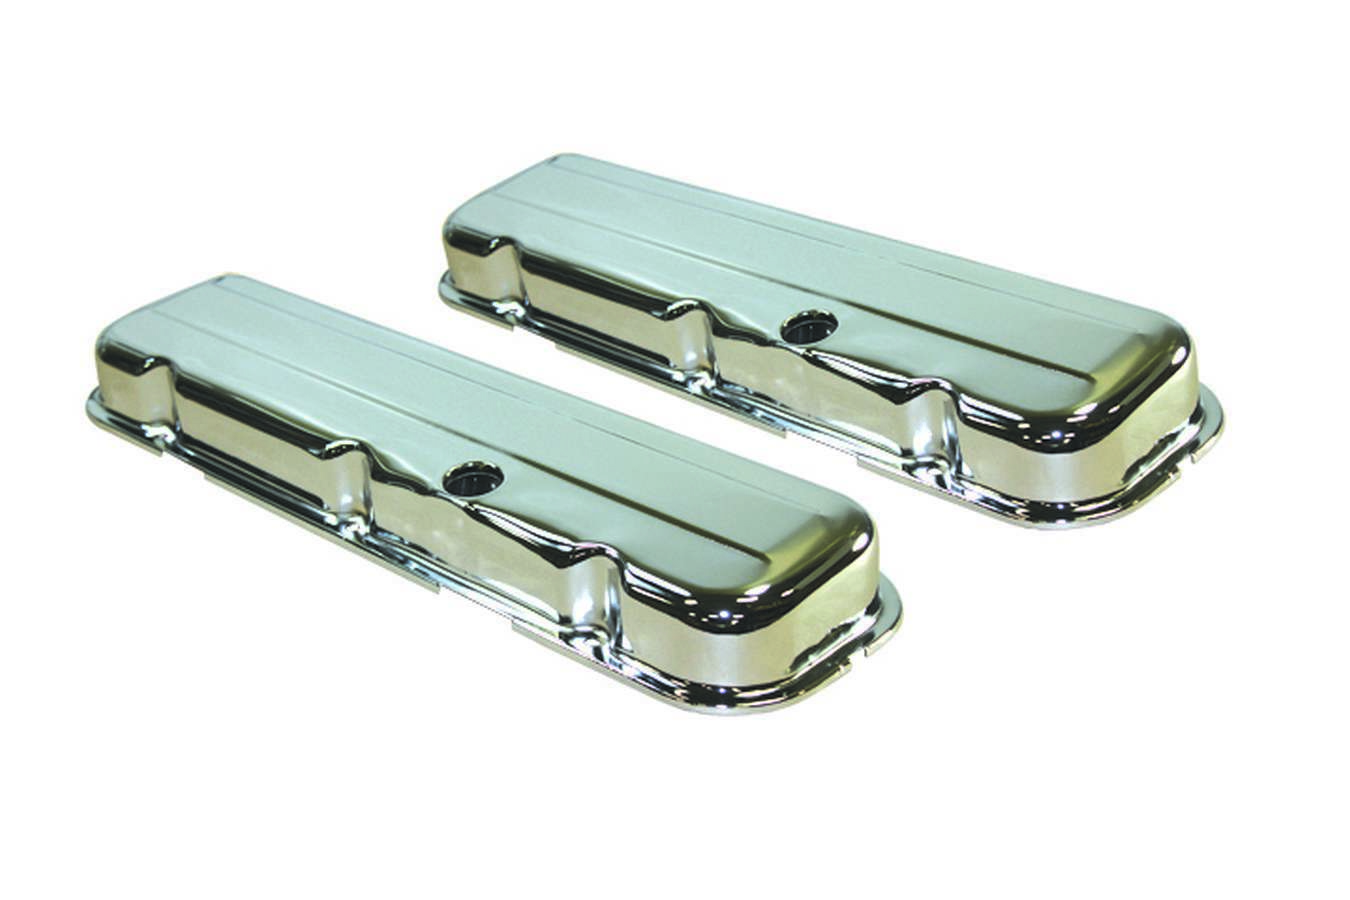 Specialty Products 8333 Valve Cover, Stock Height, Baffled, Breather Holes, Steel, Chrome, Big Block Chevy, Pair